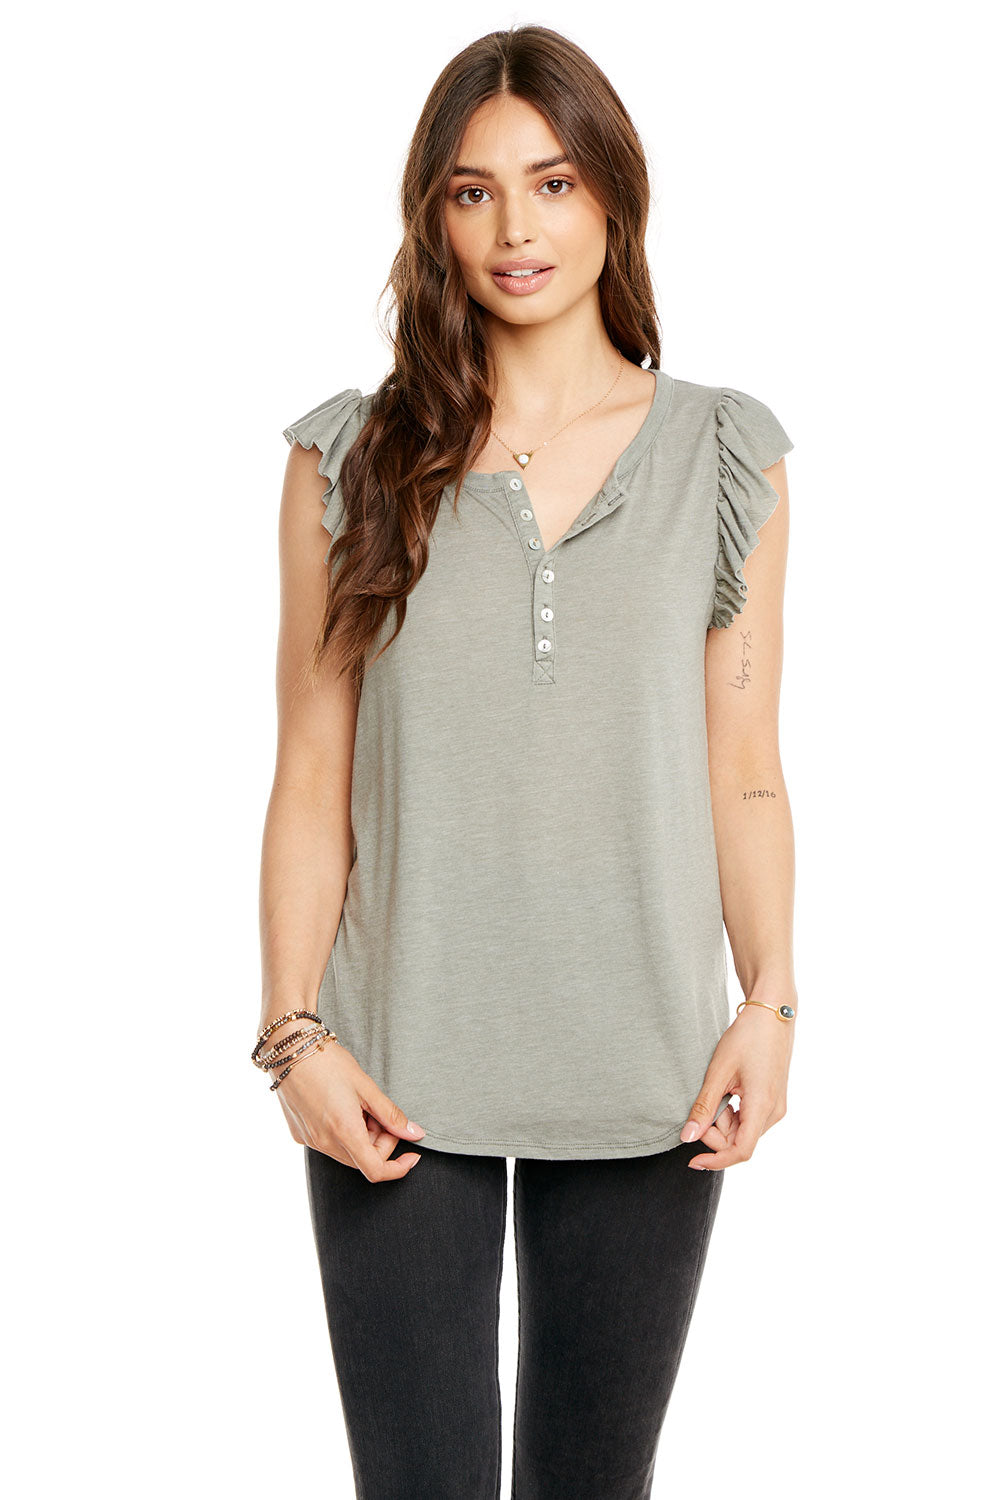 aa8d32aa83d VINTAGE JERSEY FLUTTER SLEEVE SHIRTTAIL HENLEY, WOMENS,  chaserbrand.com,chaser clothing,